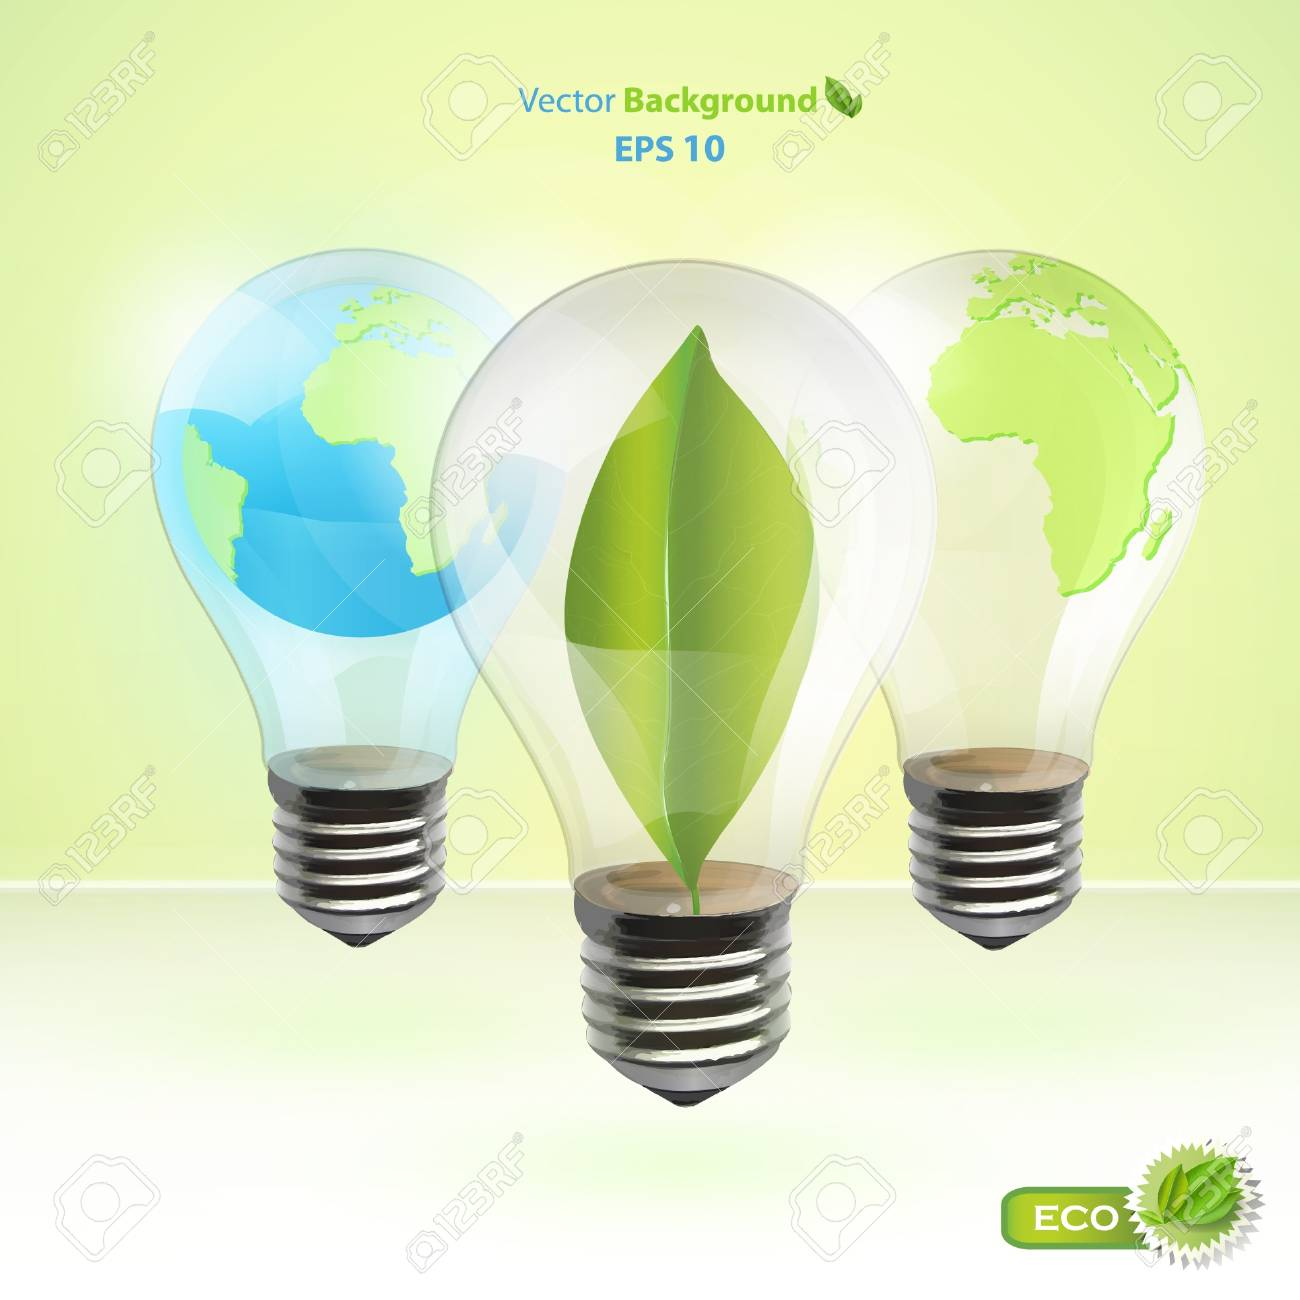 Collection of realistic eco bulb  Vector background design Stock Vector - 17470144